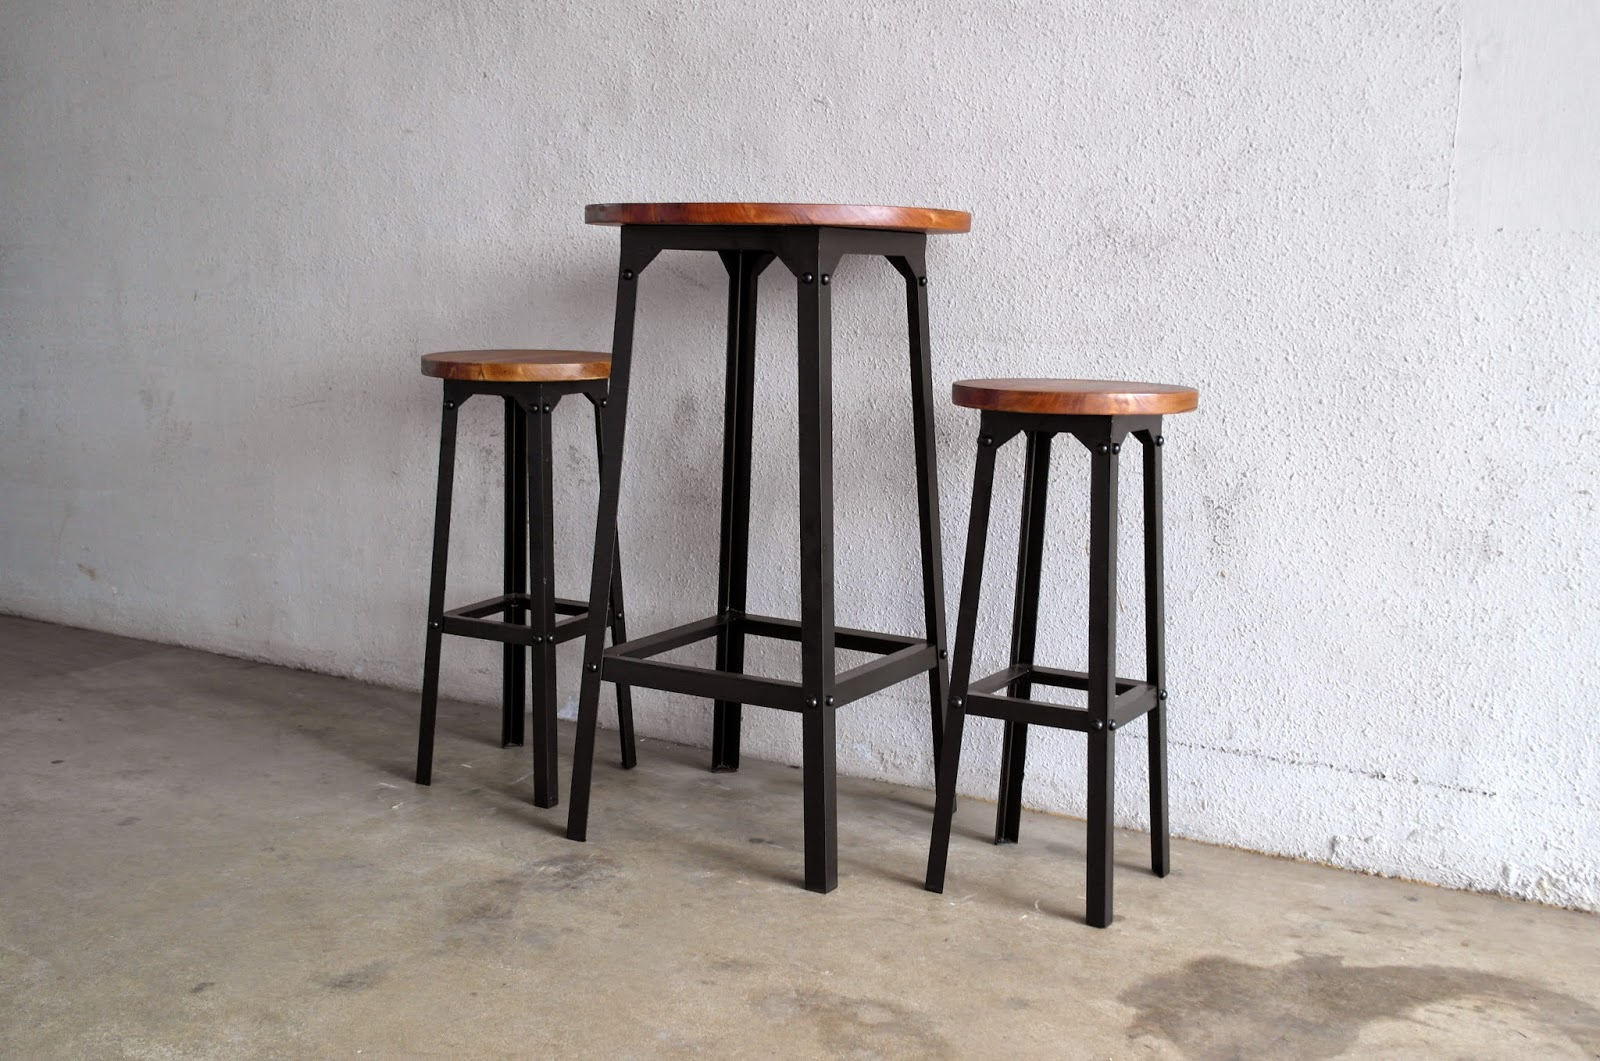 Industrial Pub Table Sets Industrial And Metal Furniture At Second Charm Second Charm